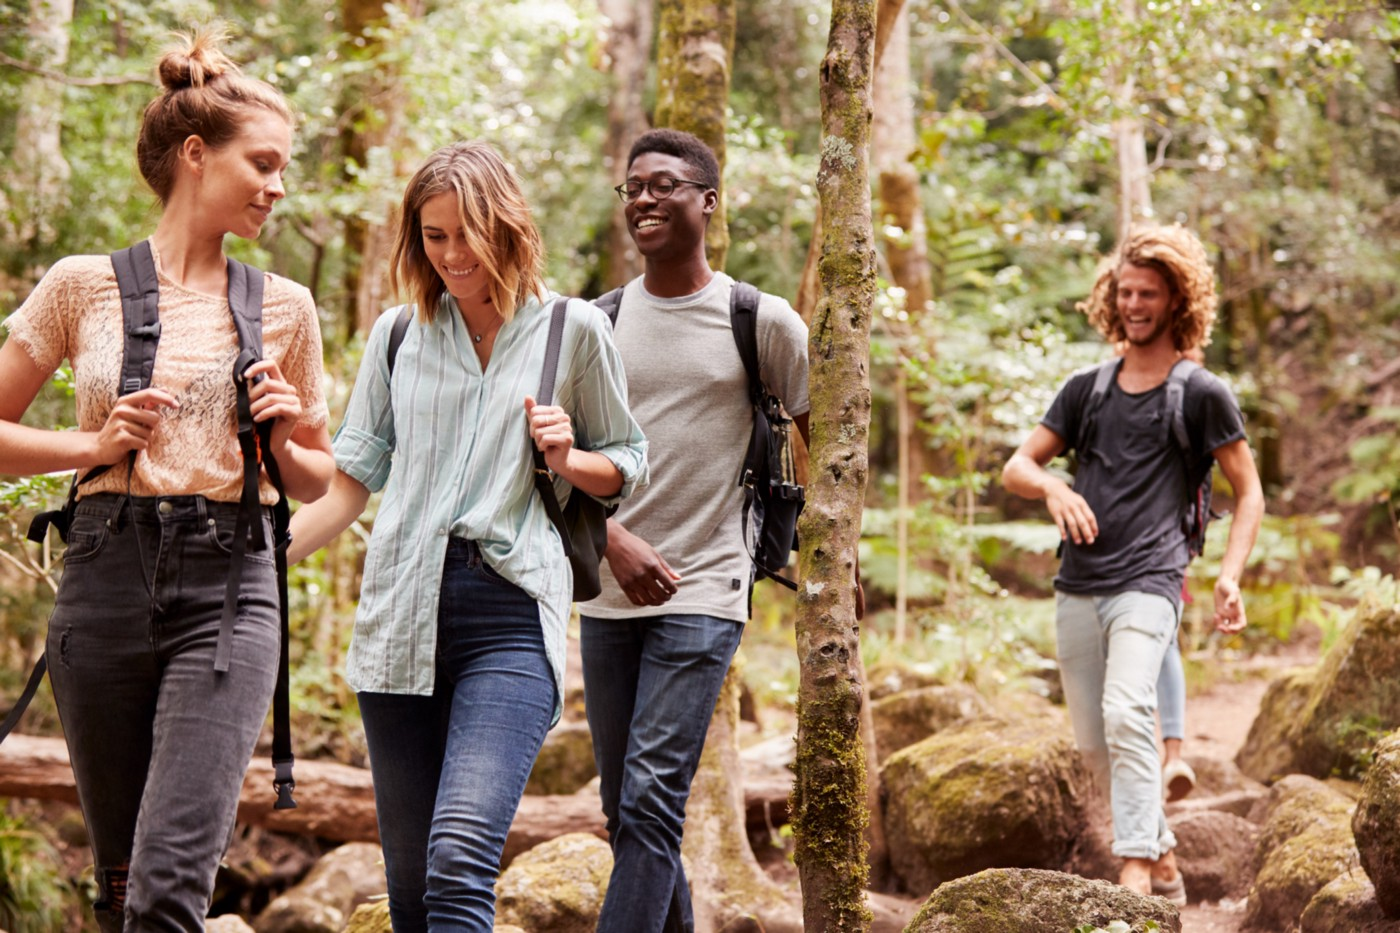 Four people with backpacks share a laugh while walking through a wooded area.